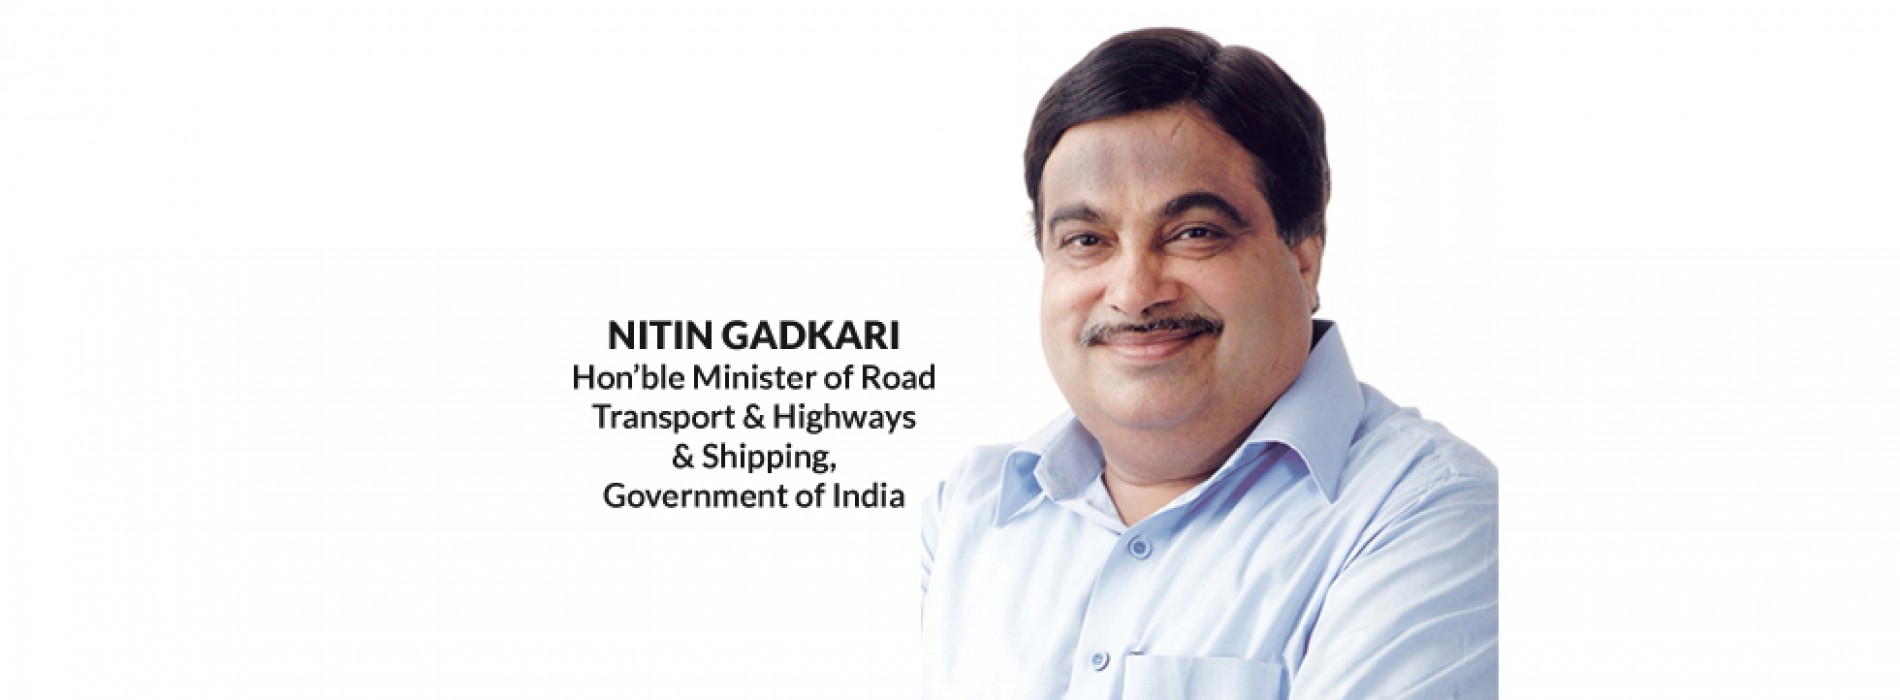 Cruise policy next month, India to attract 700 vessels says Gadkari